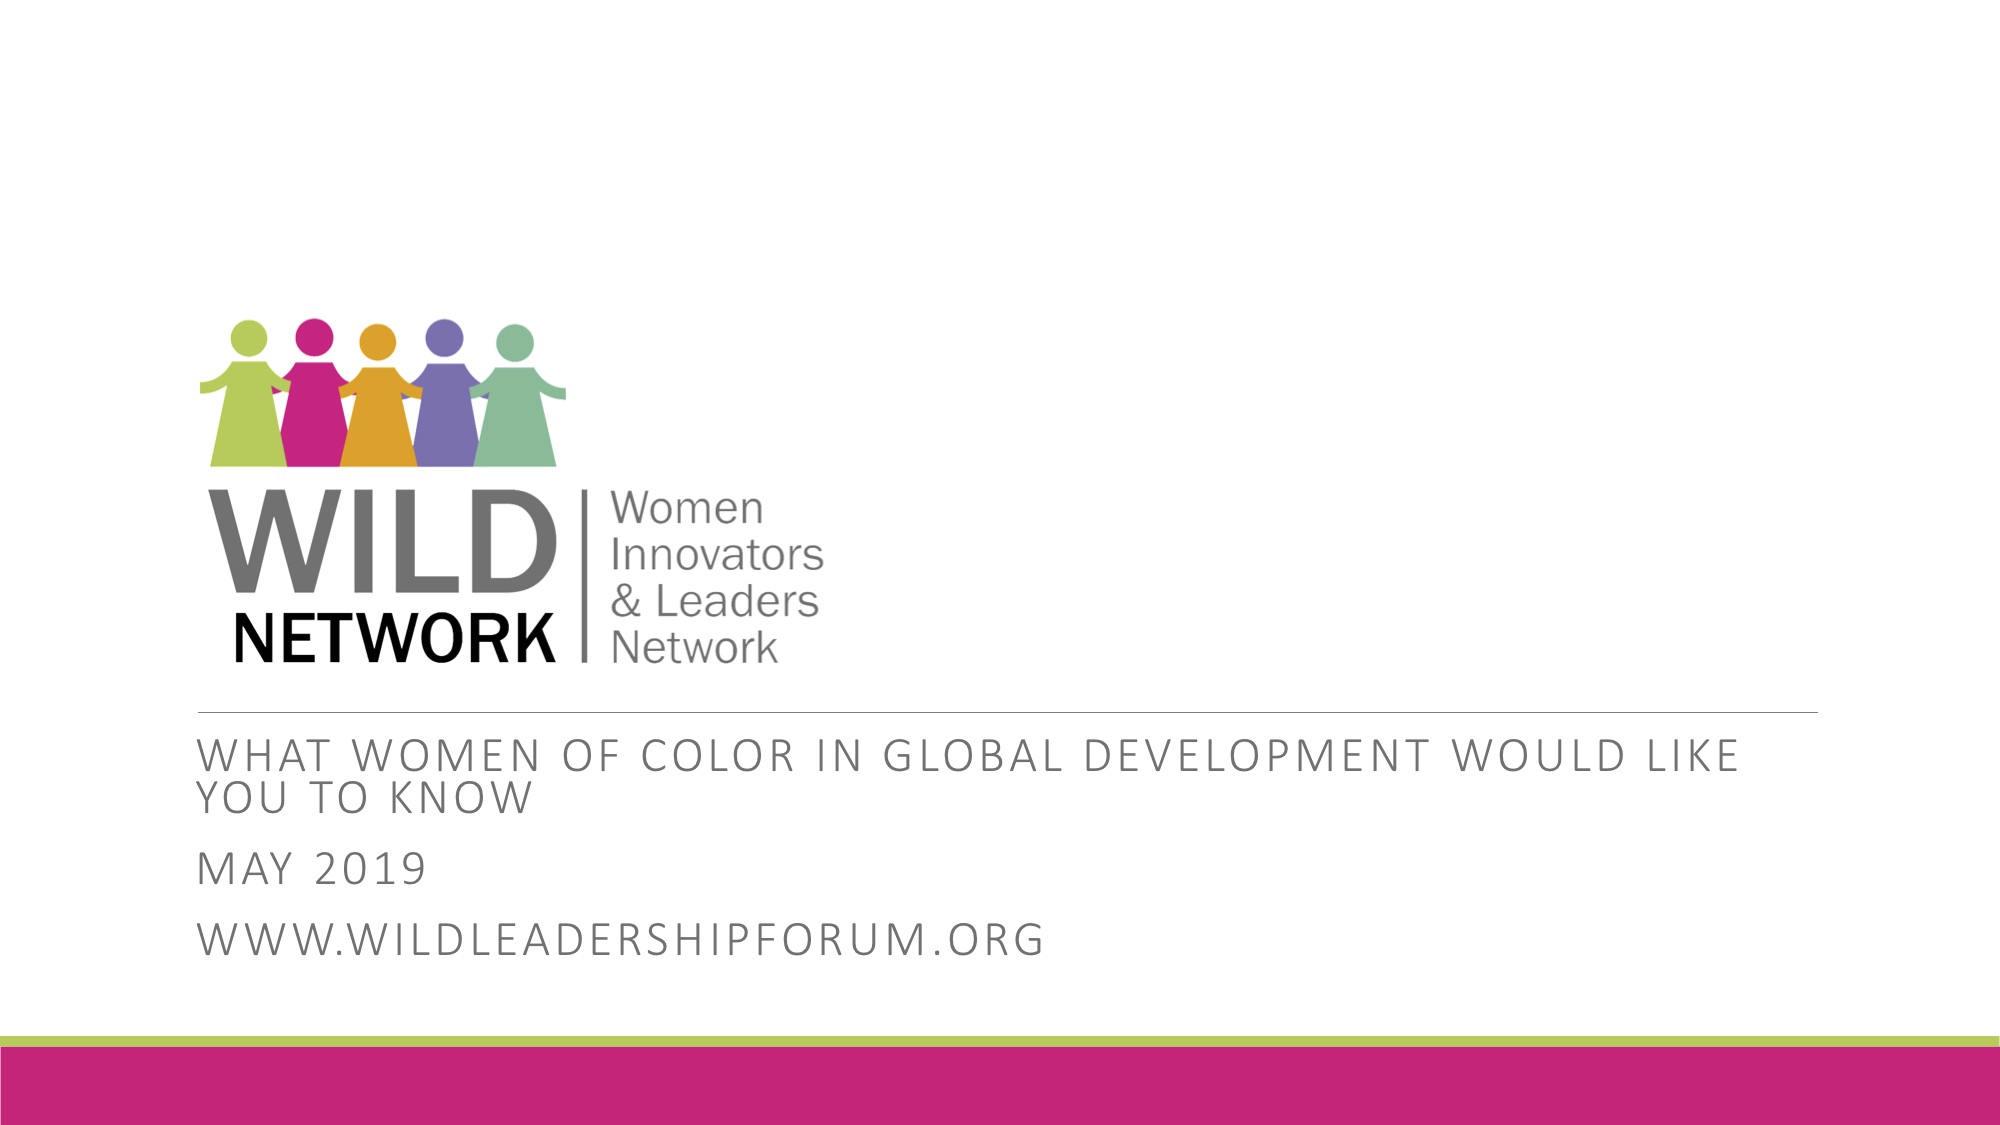 - The observations in this deck align with a number of other studies looking at the experiences of women of color in the workplace. But because the deck speaks specifically to the global development sector, and the realities that we and our colleagues deal with every day, we at WILD believe it will be especially impactful.